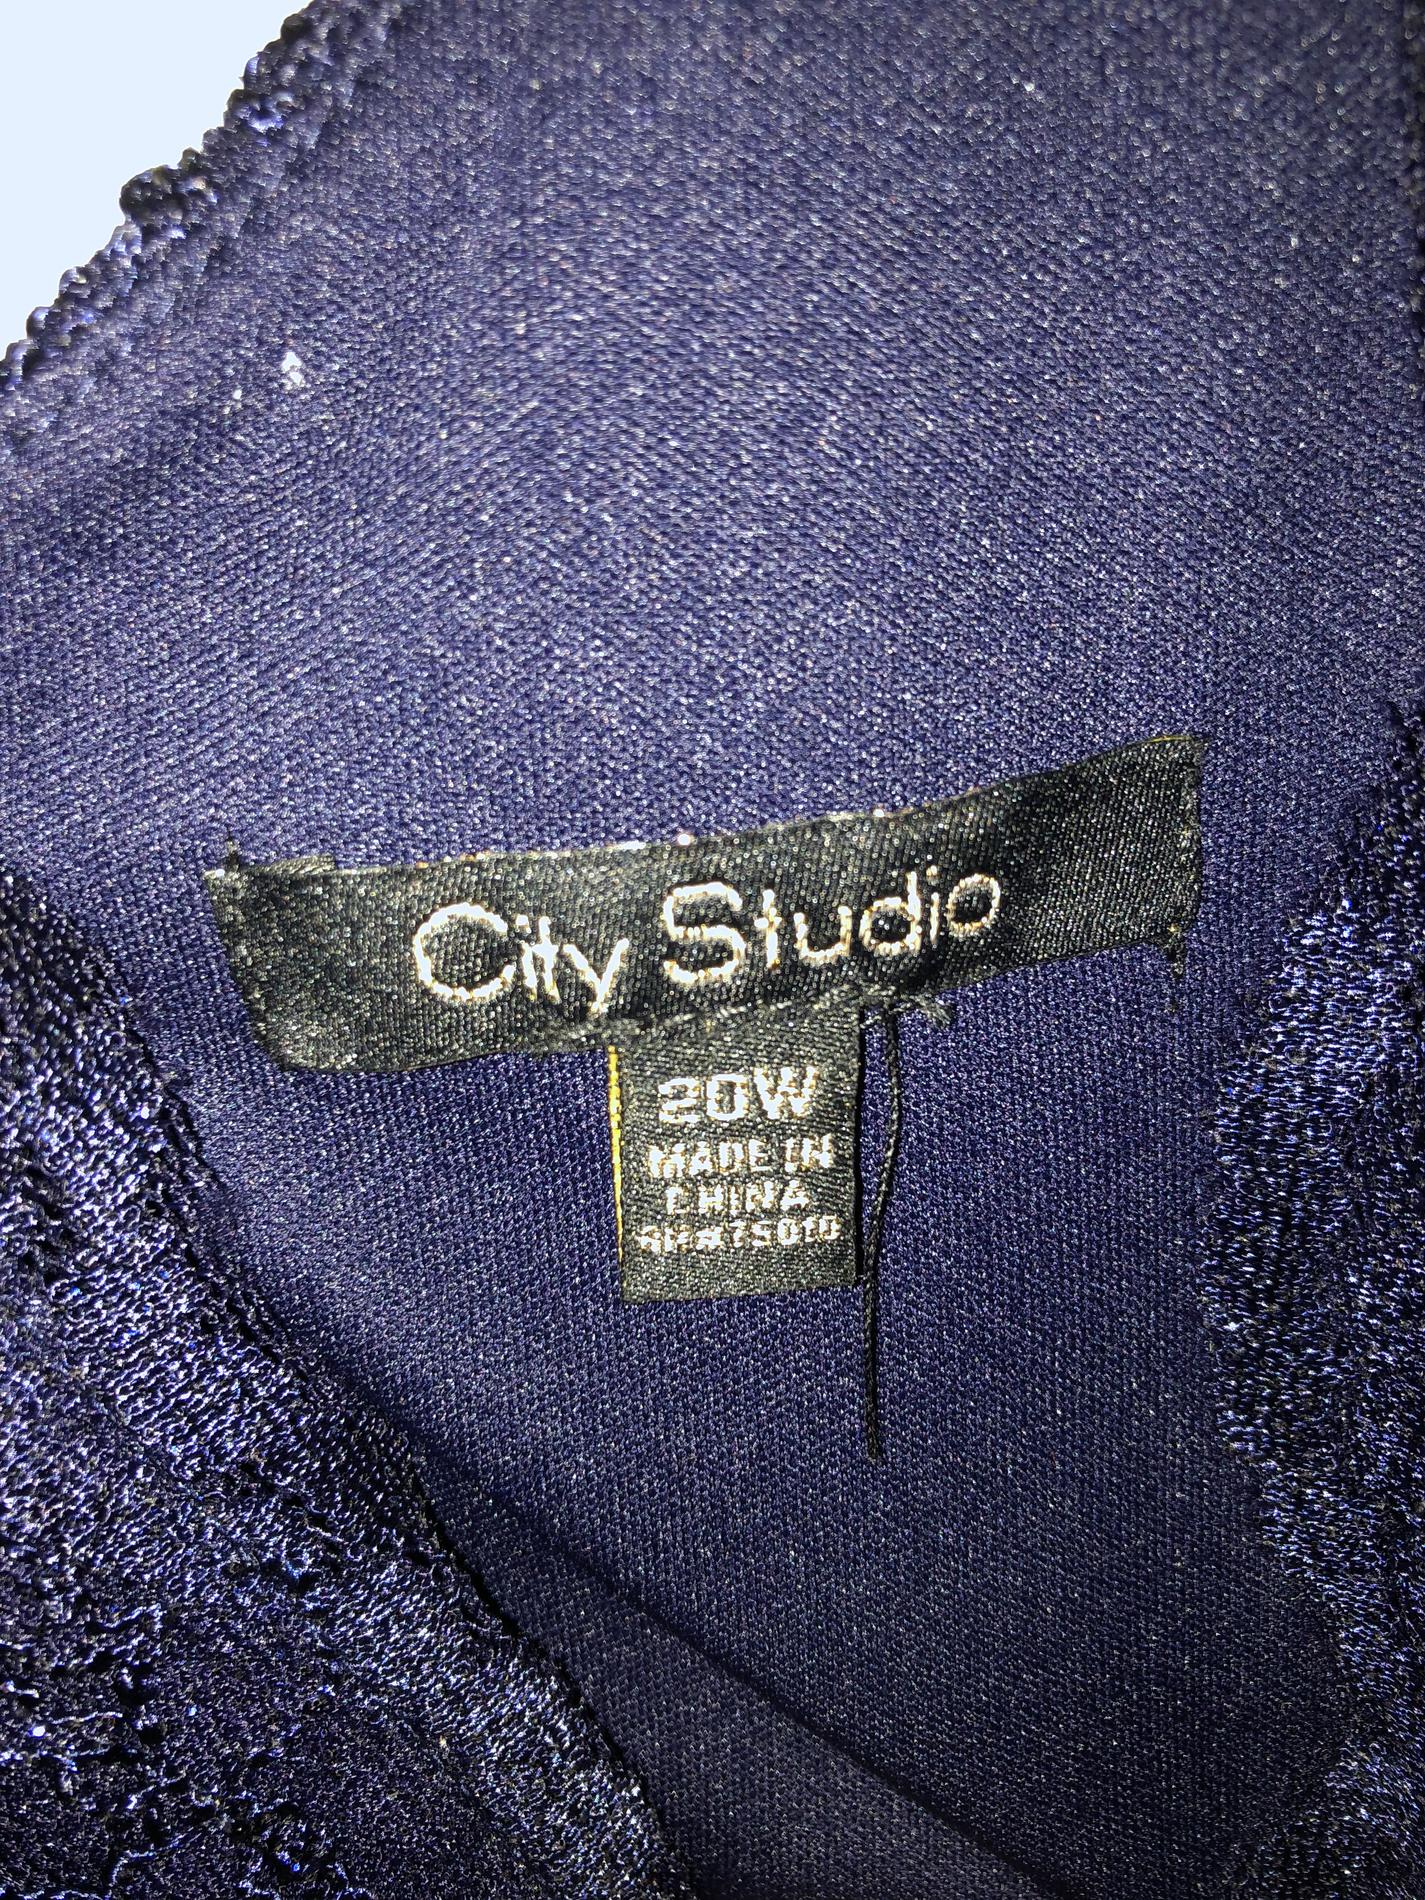 City studio Multicolor Size 20 Floral A-line Dress on Queenly